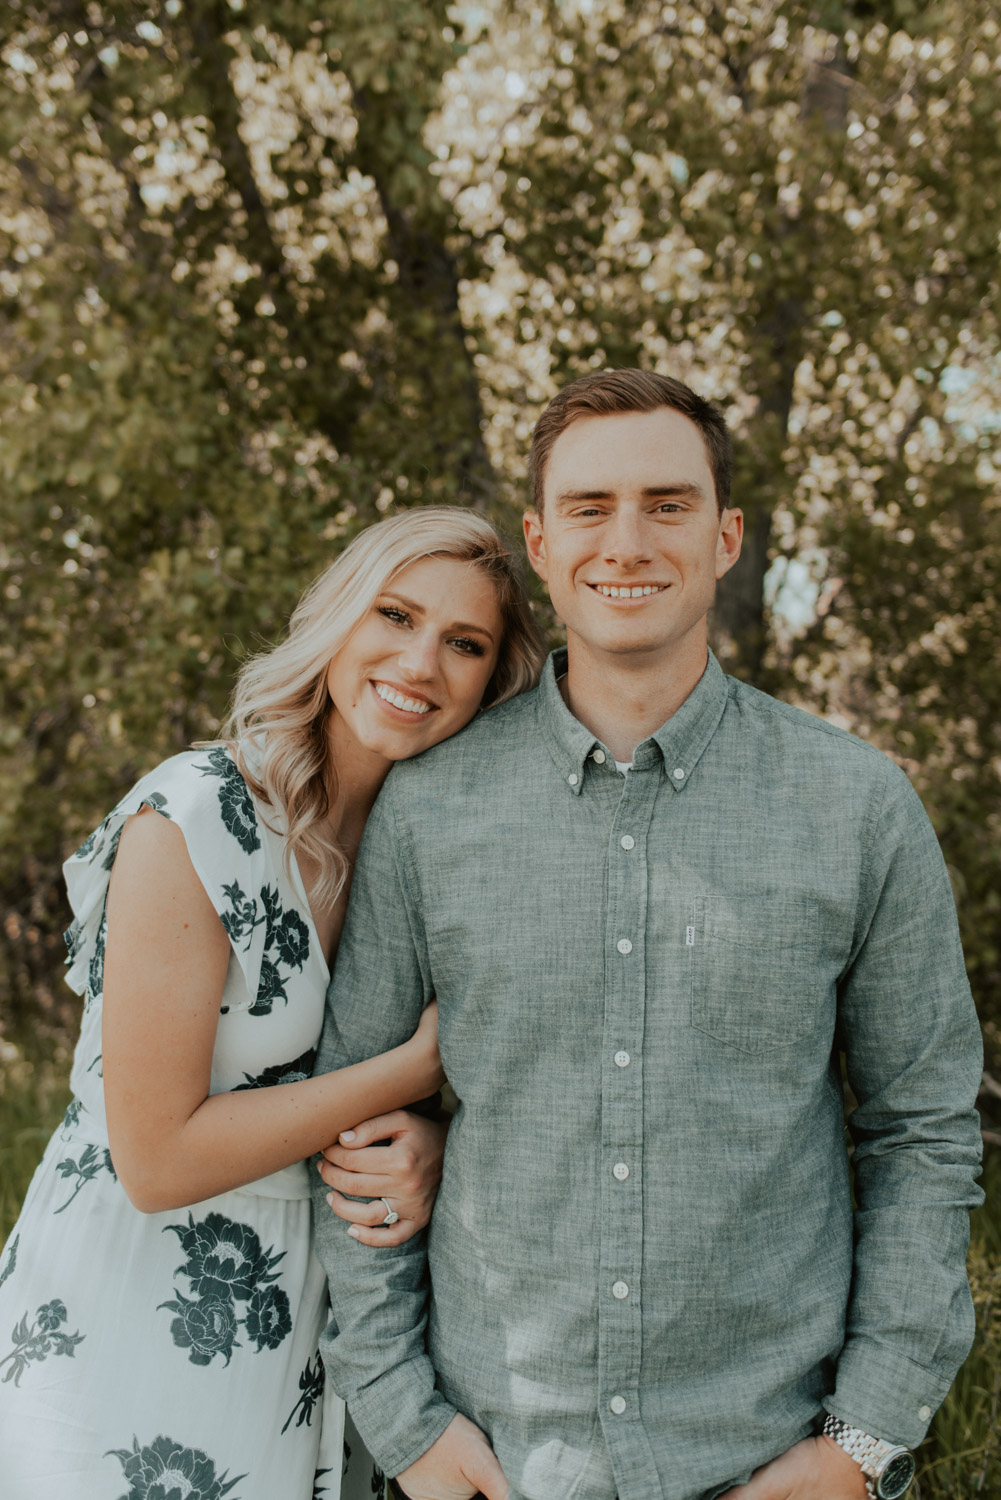 savannah + hank are from colorado, but had some free time in lincoln, nebraska while in town for wedding and took advantage of one of the first bright warm days of summer for their engagement session!